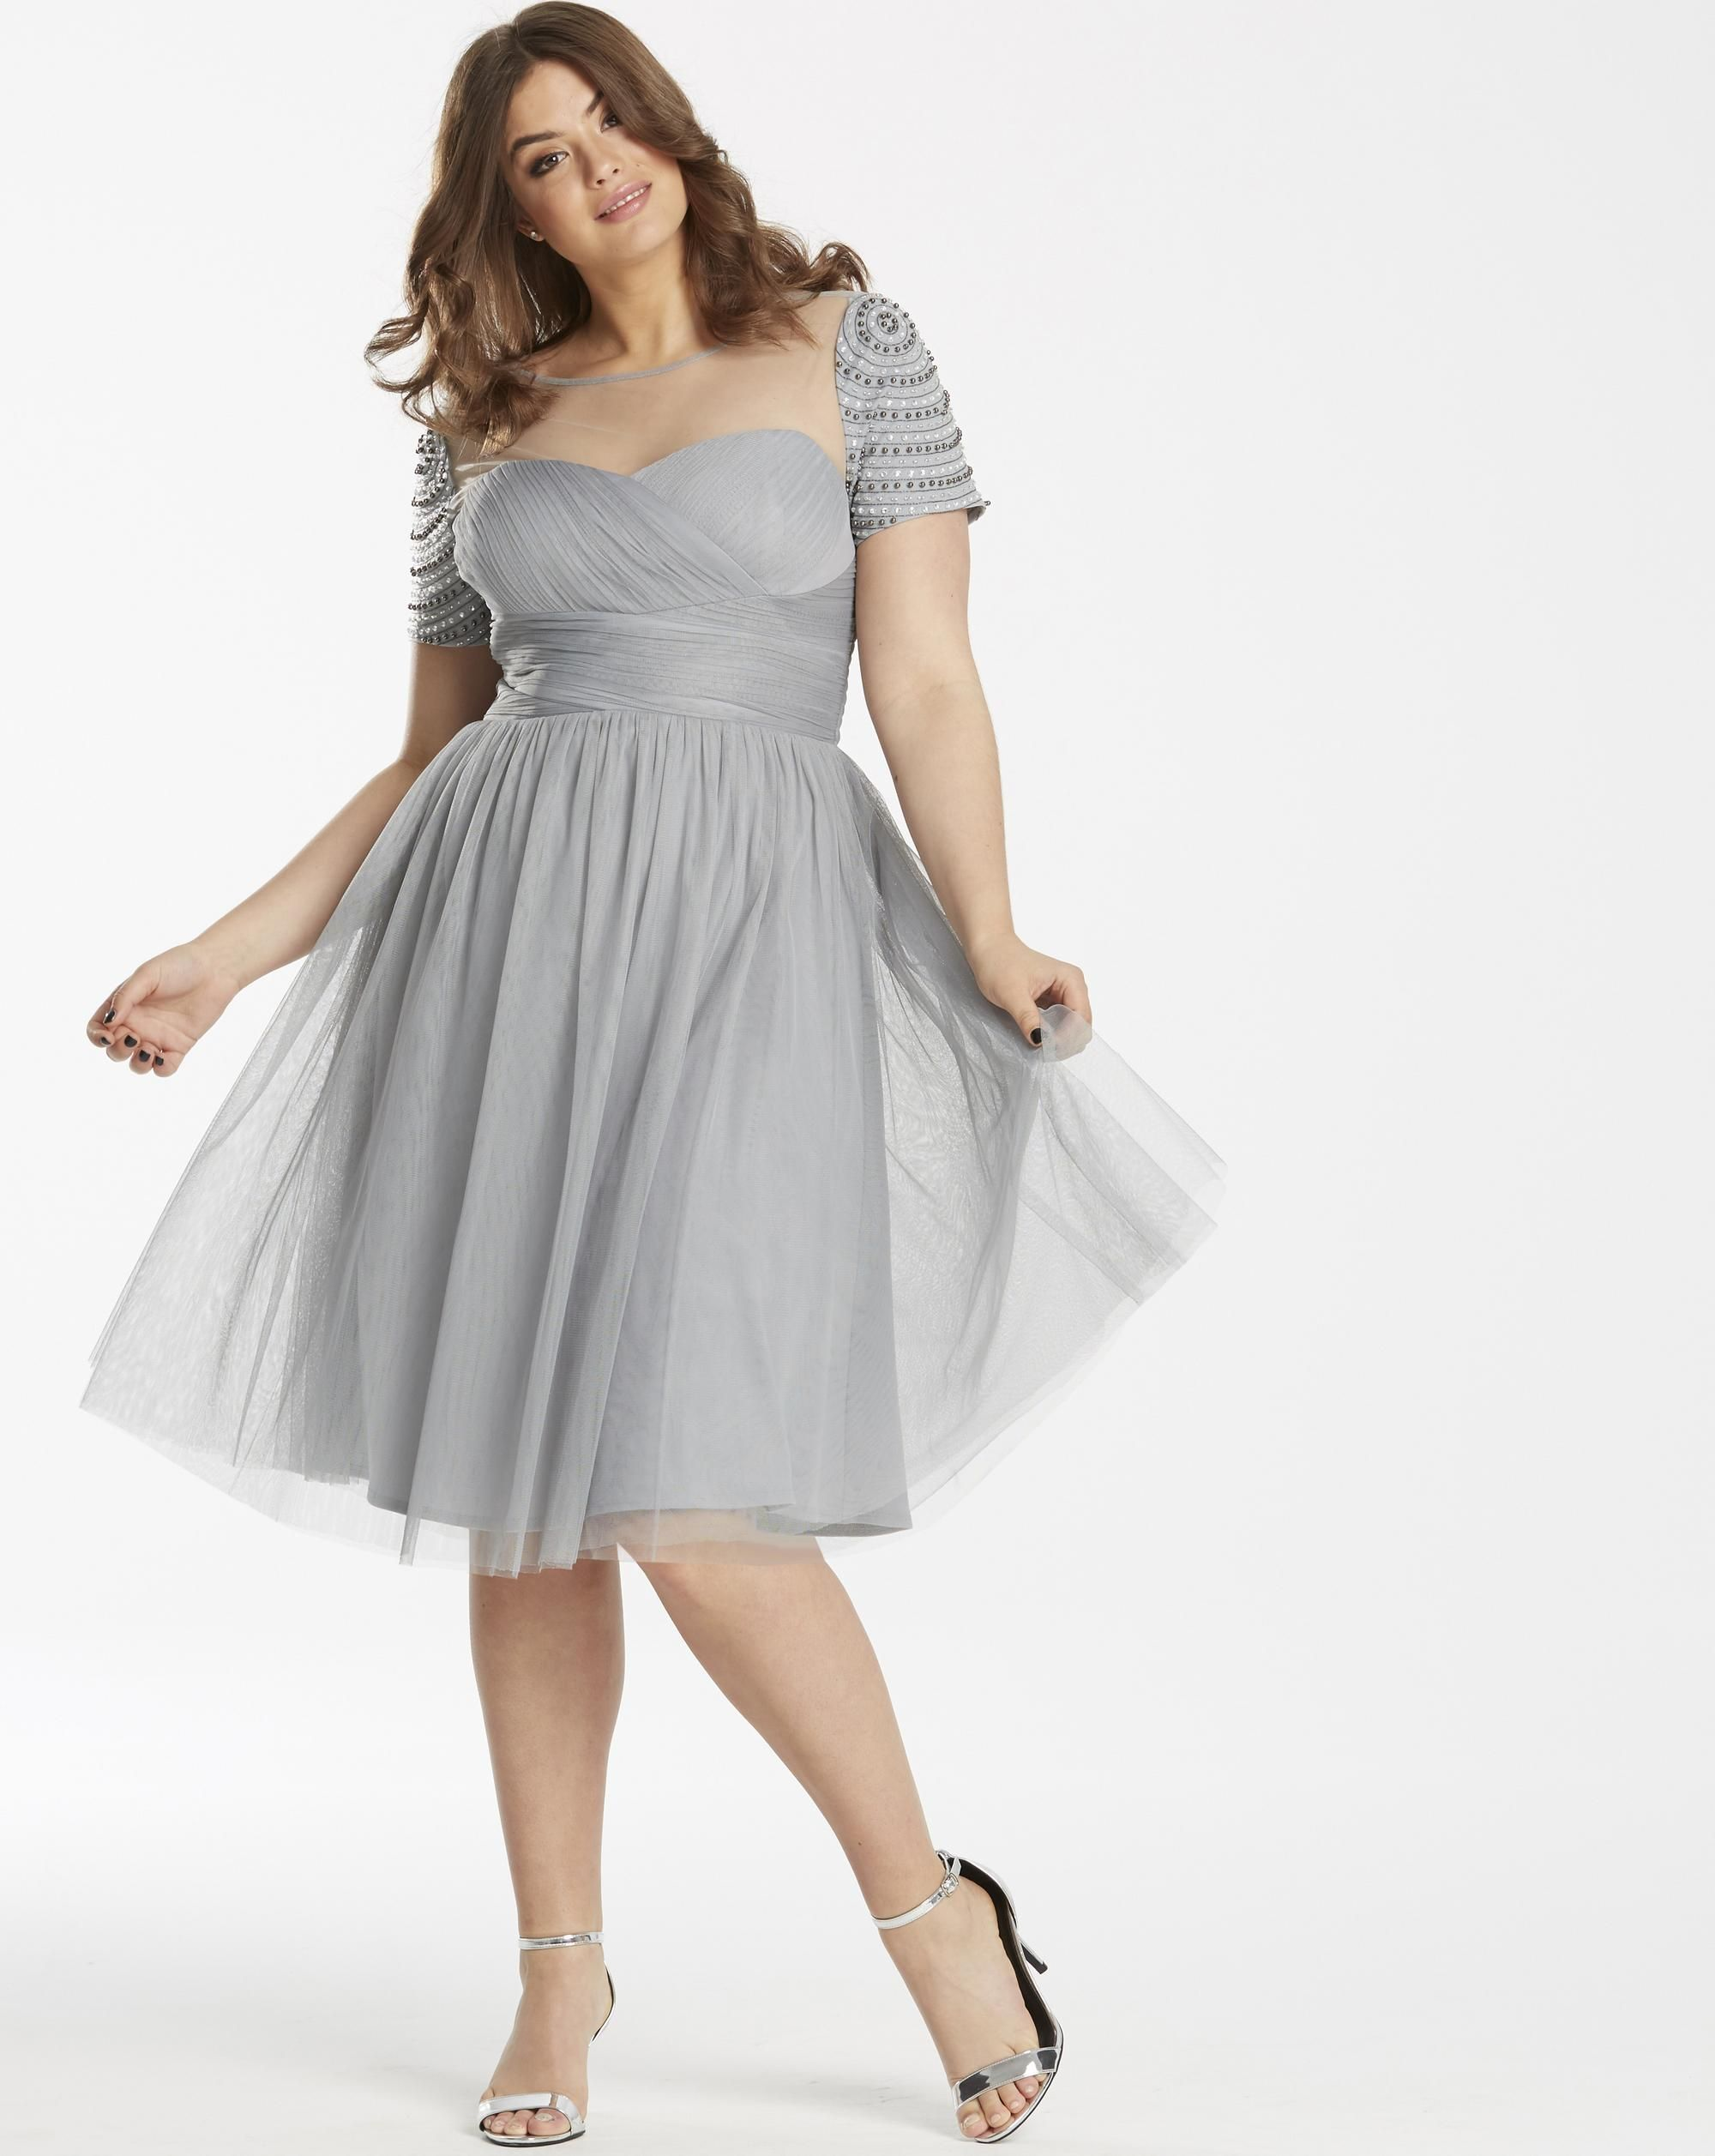 Plus size party dresses for weddings  Plus Size Formal Dress  Plus Size Embellished Wrap Dress for prom